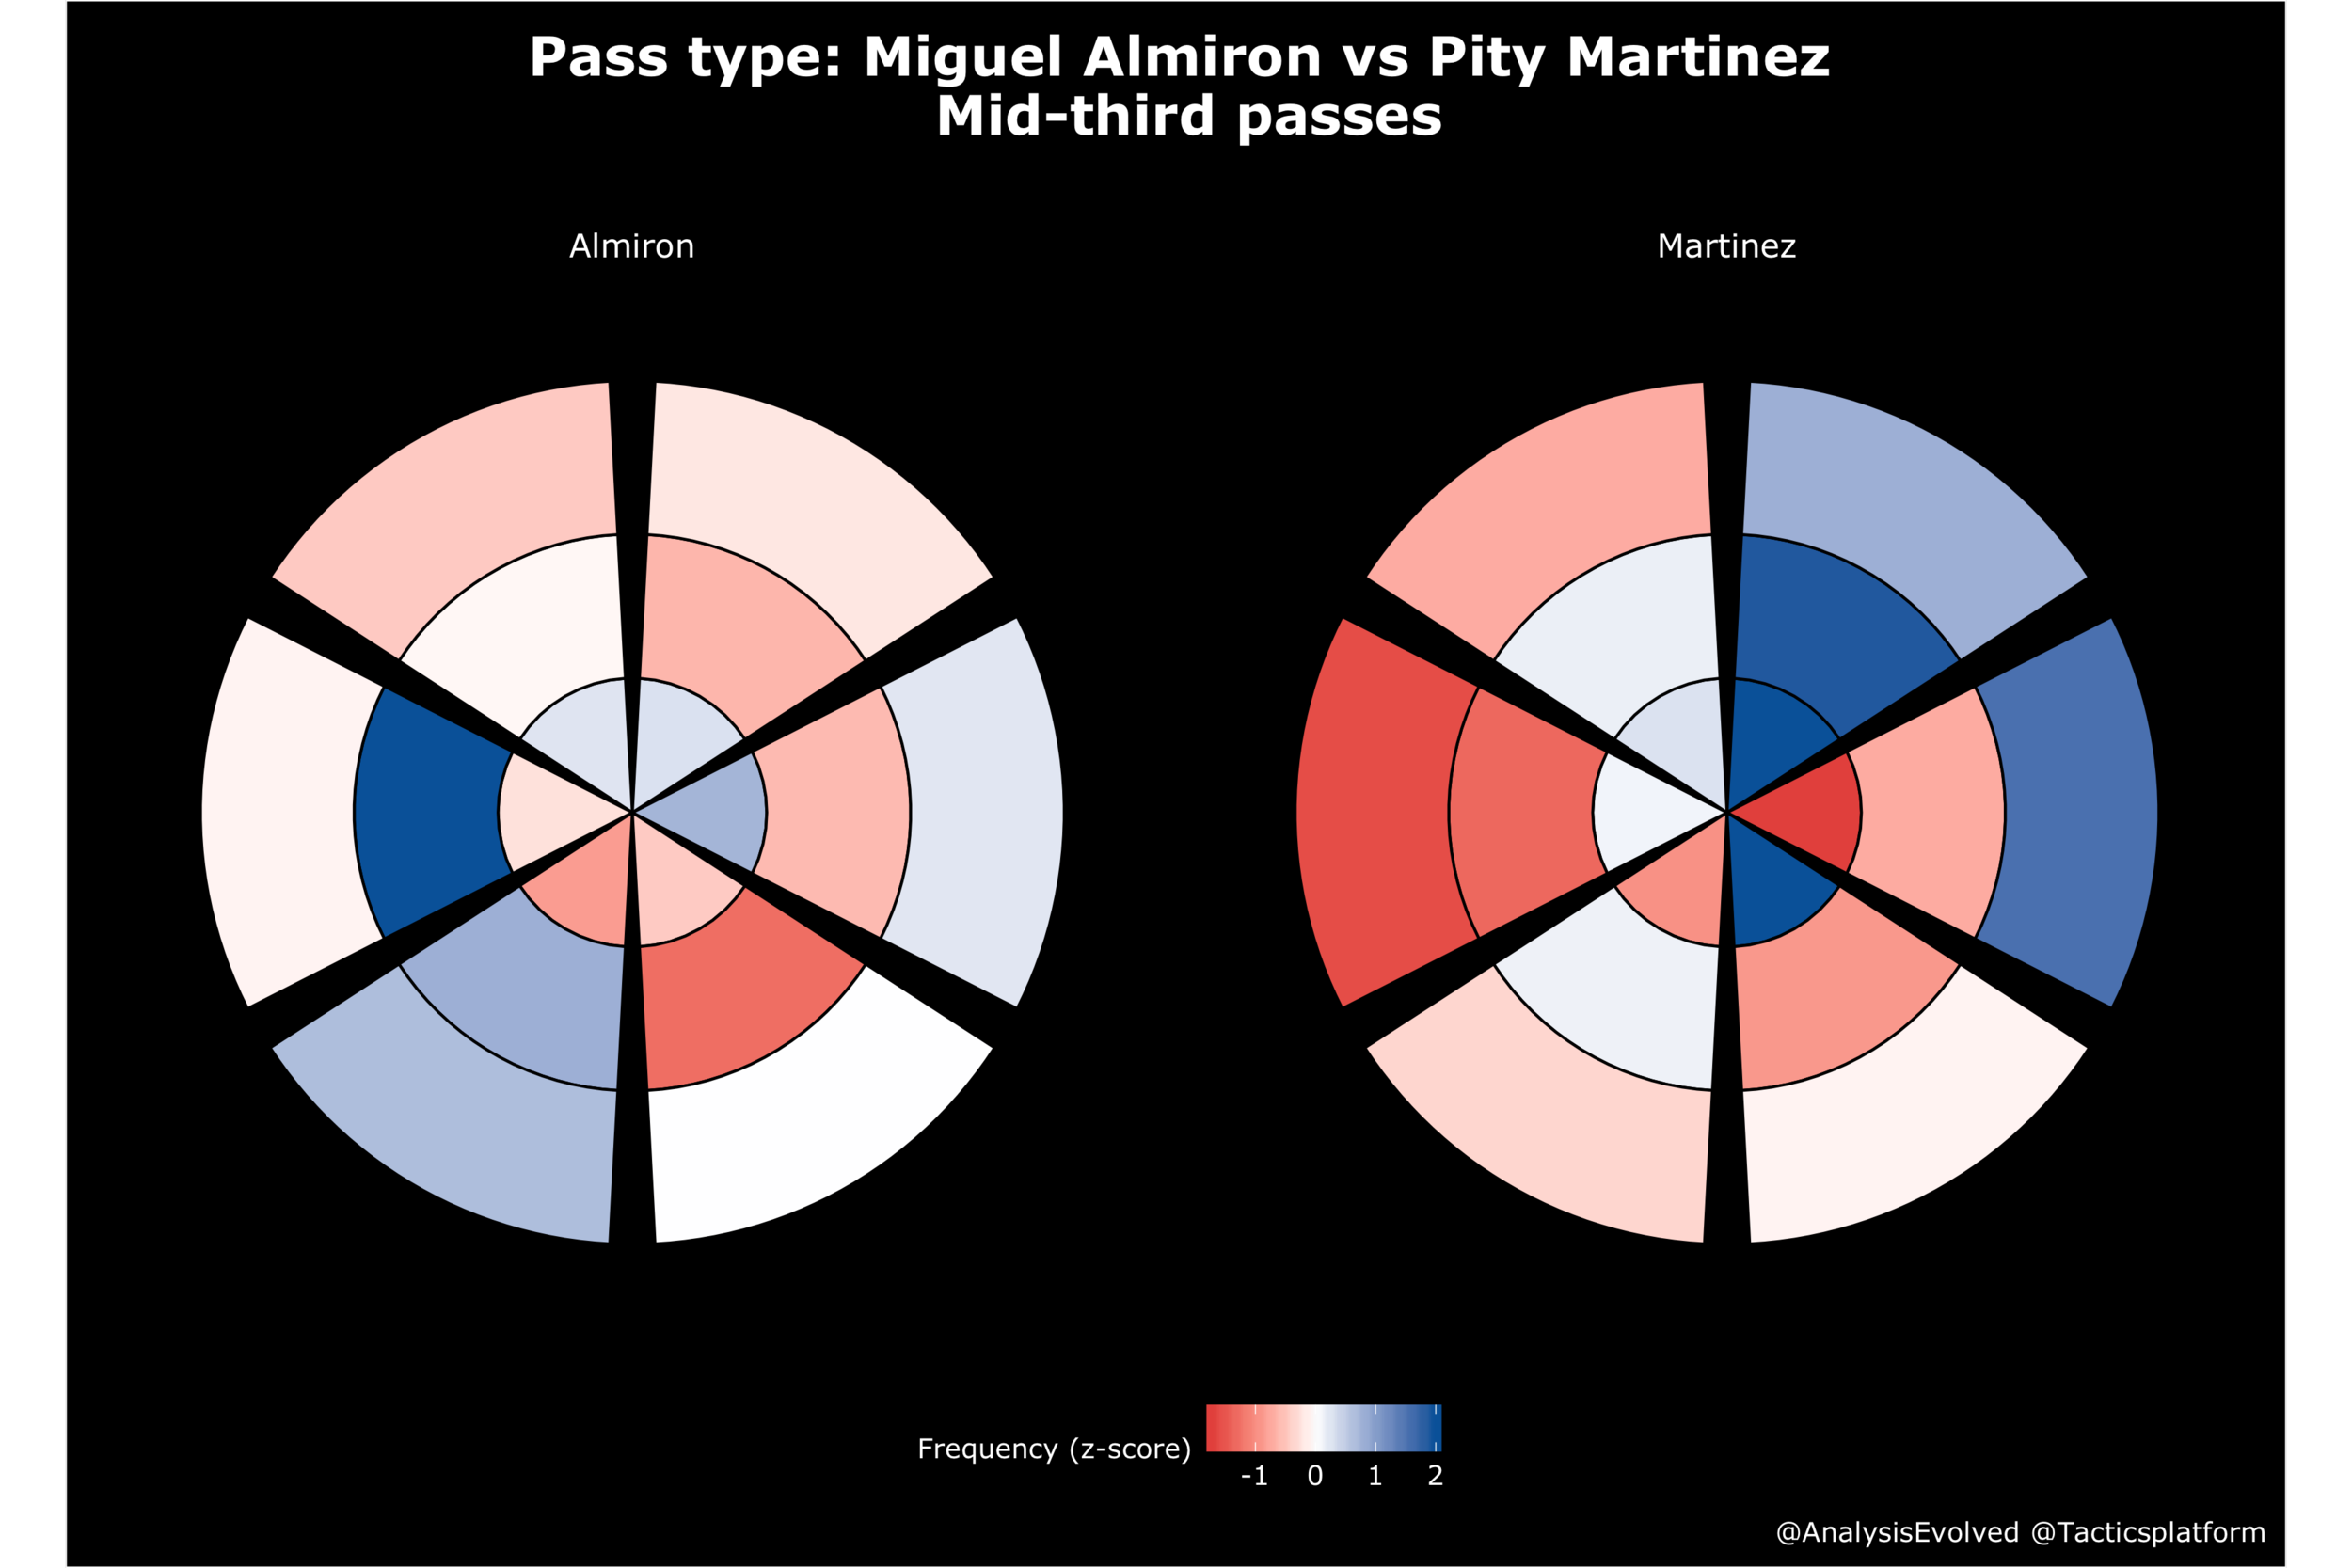 Pass type distribution in six directions and three distance classes. Red means the player makes that pass less frequently than the average player, blue means they make it more frequently than average.